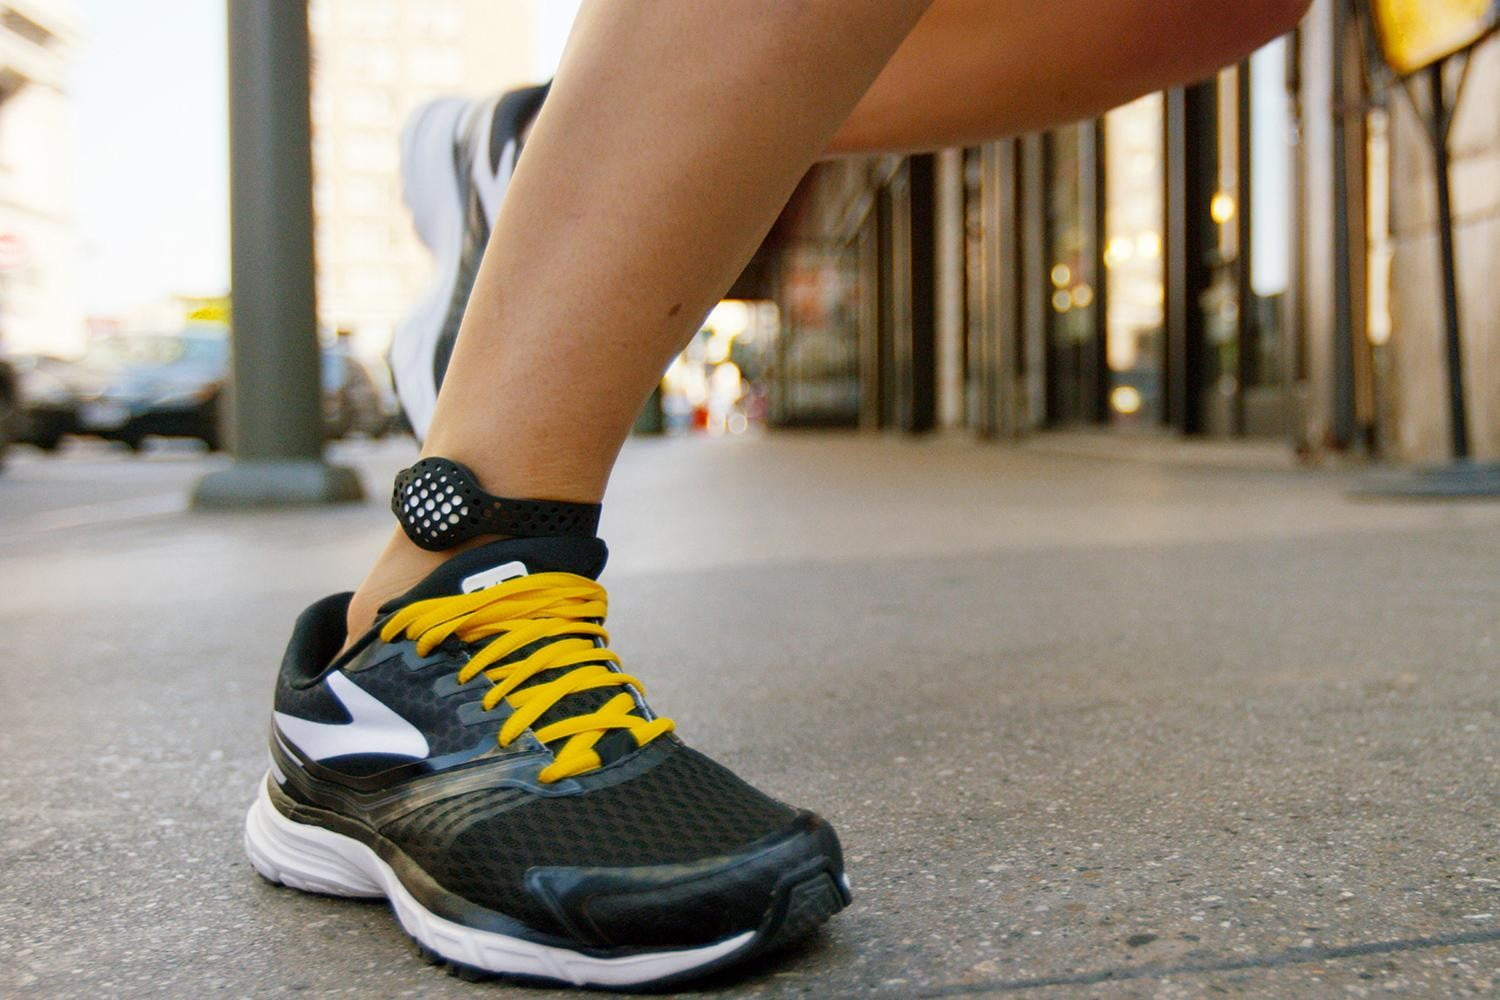 the moov now uses machine smarts to help improve your workouts running